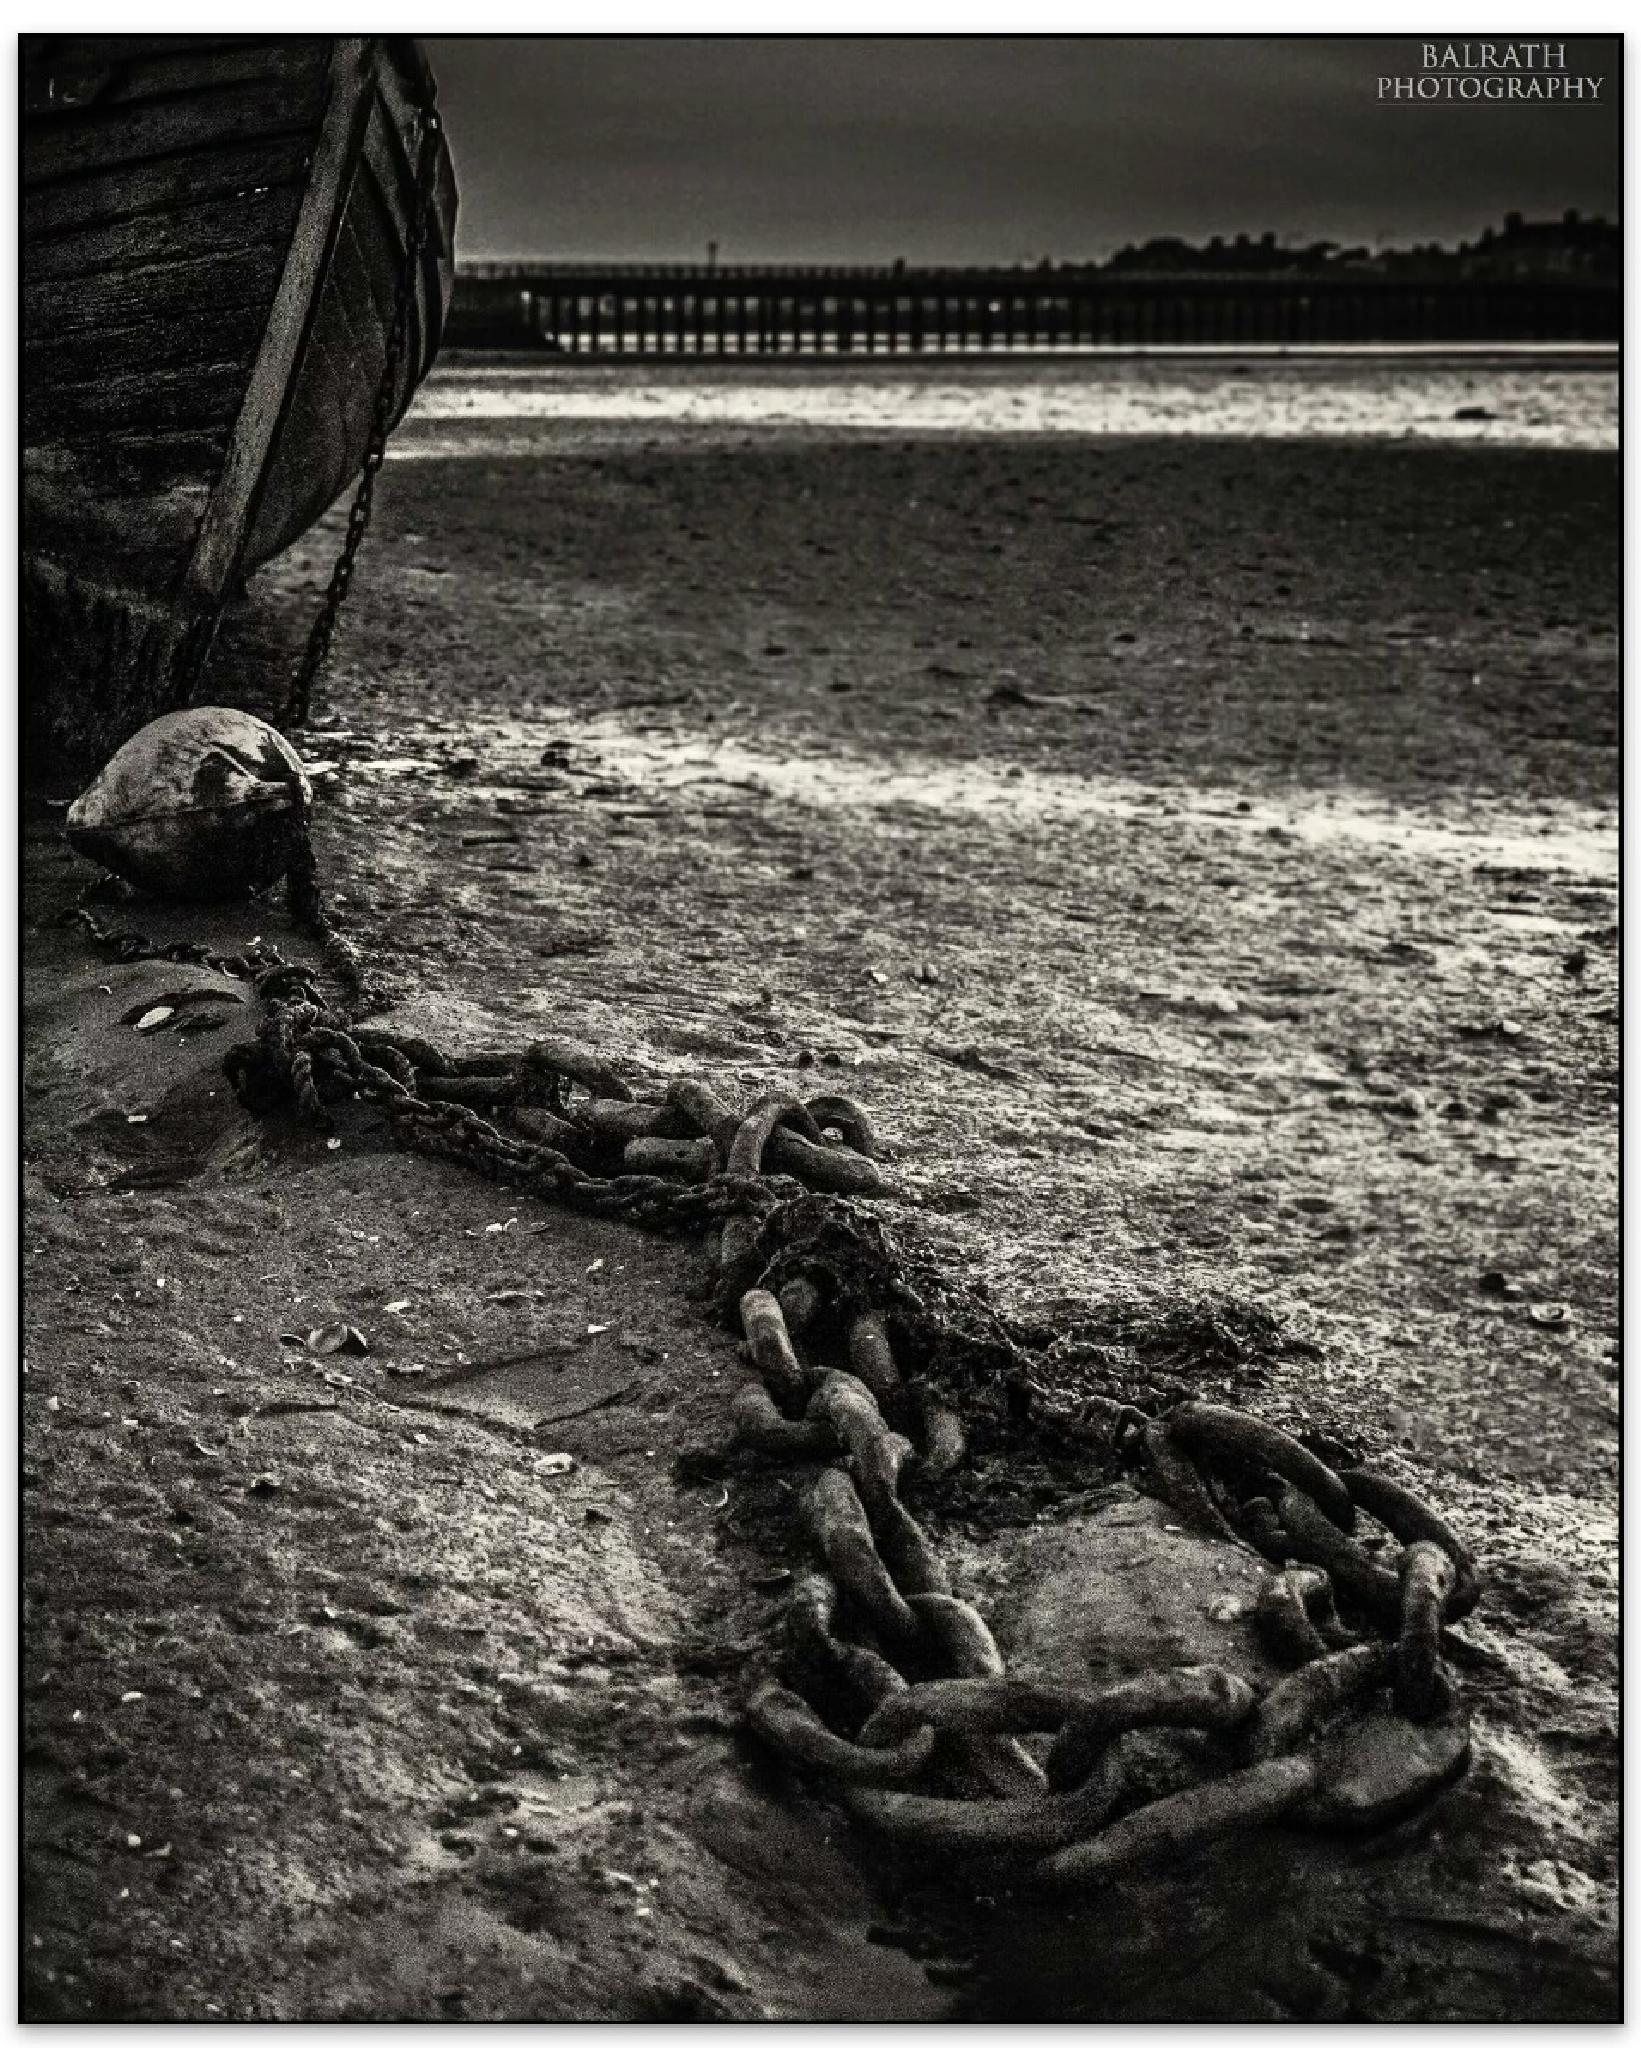 Chained  by BALRATH PHOTOGRAPHY